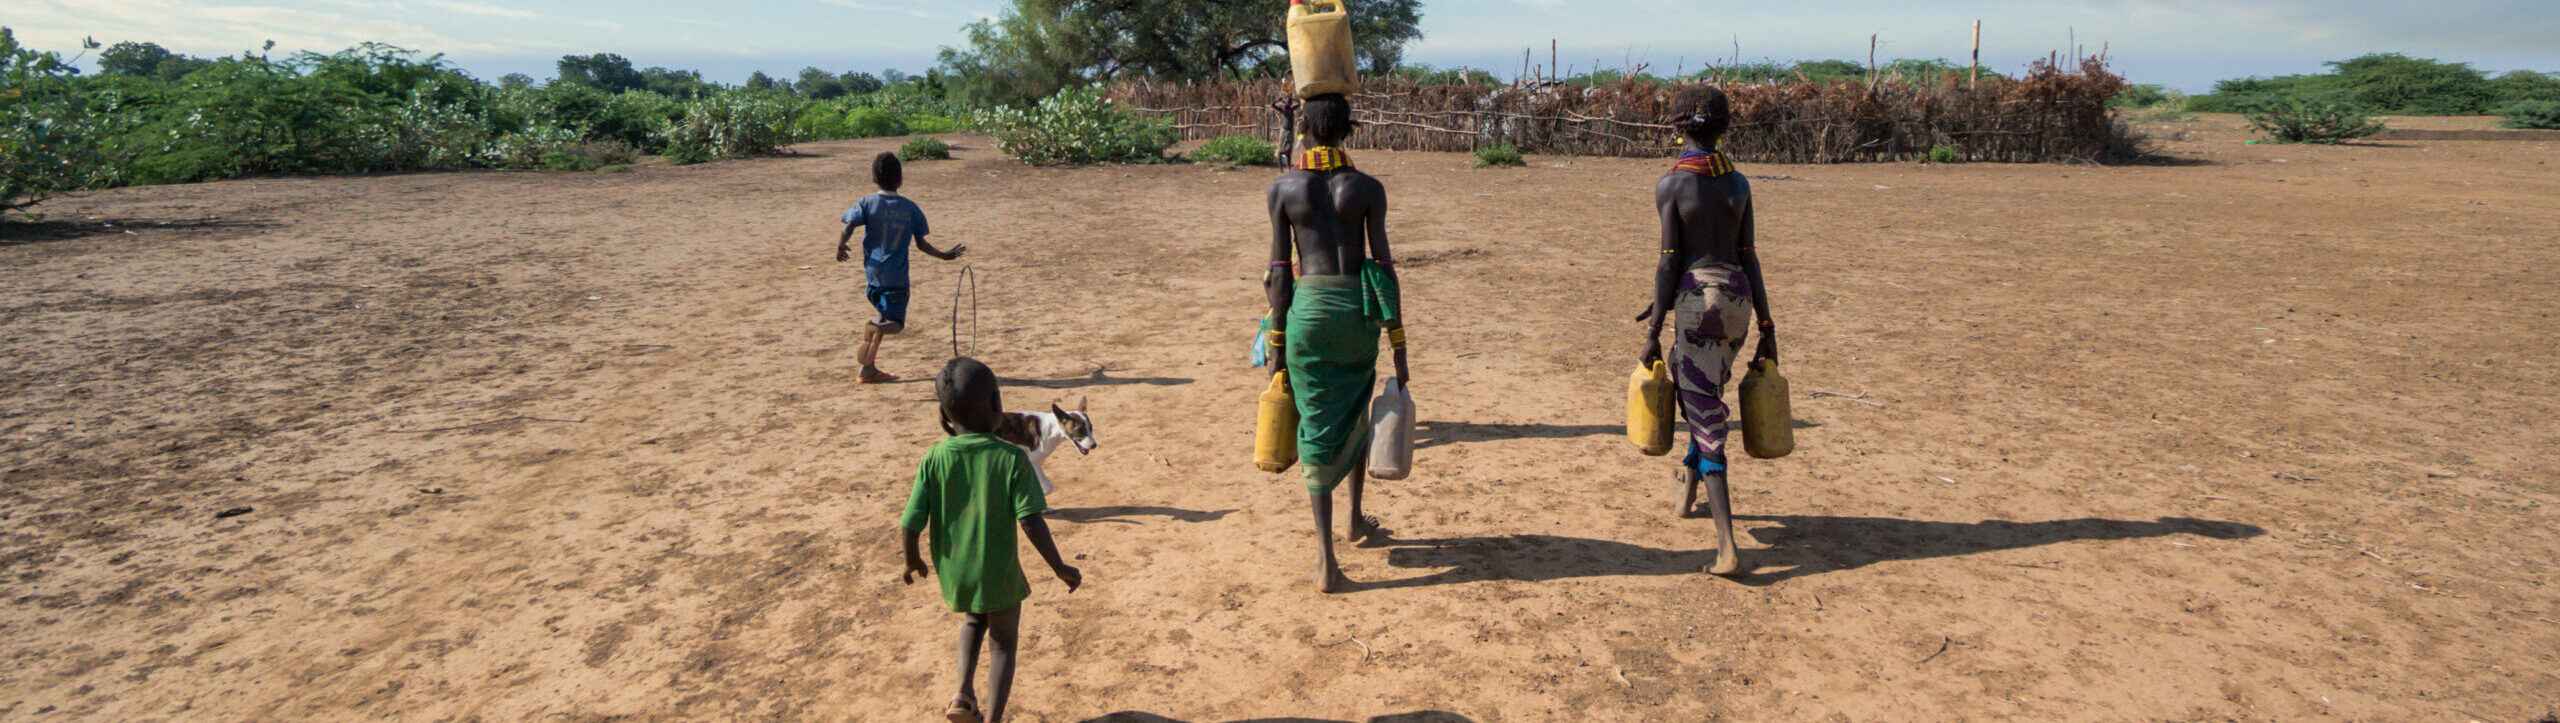 Photo of a four people in African attire carrying water jugs on top of their heads, walking across a dry dirt field. Their backs are to the camera.